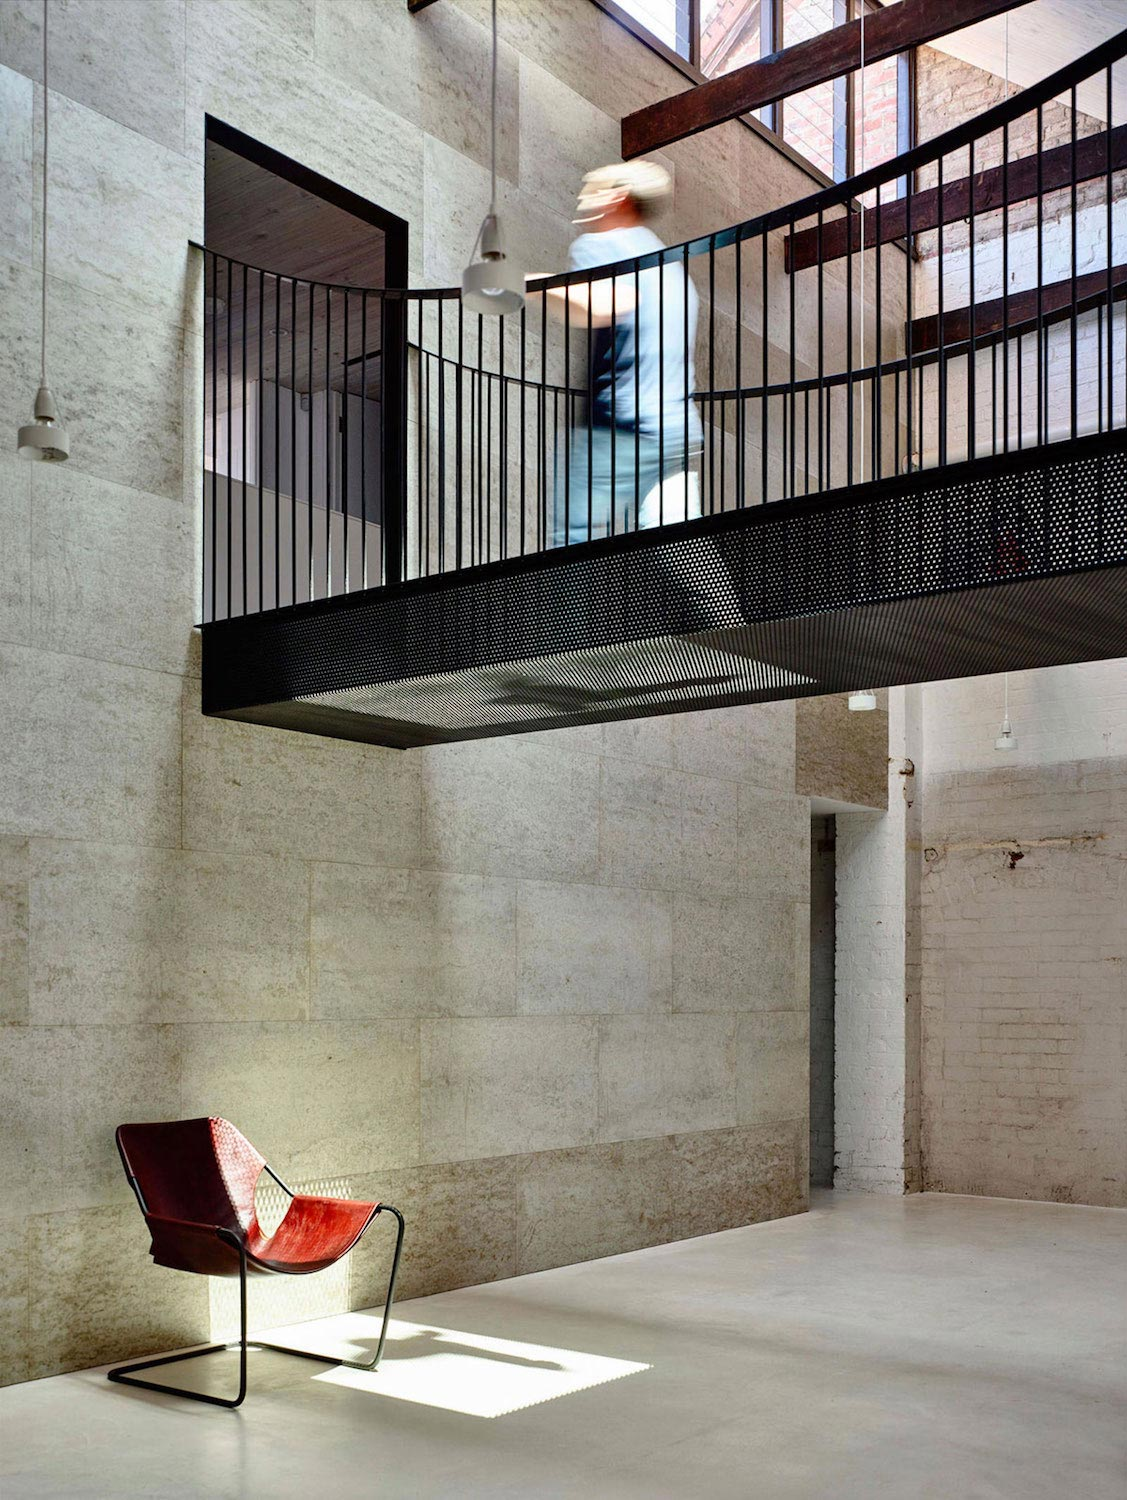 Renovation Warehouse Former Gritty Brick Warehouse Old Industrial Fitzroy Gets Modern